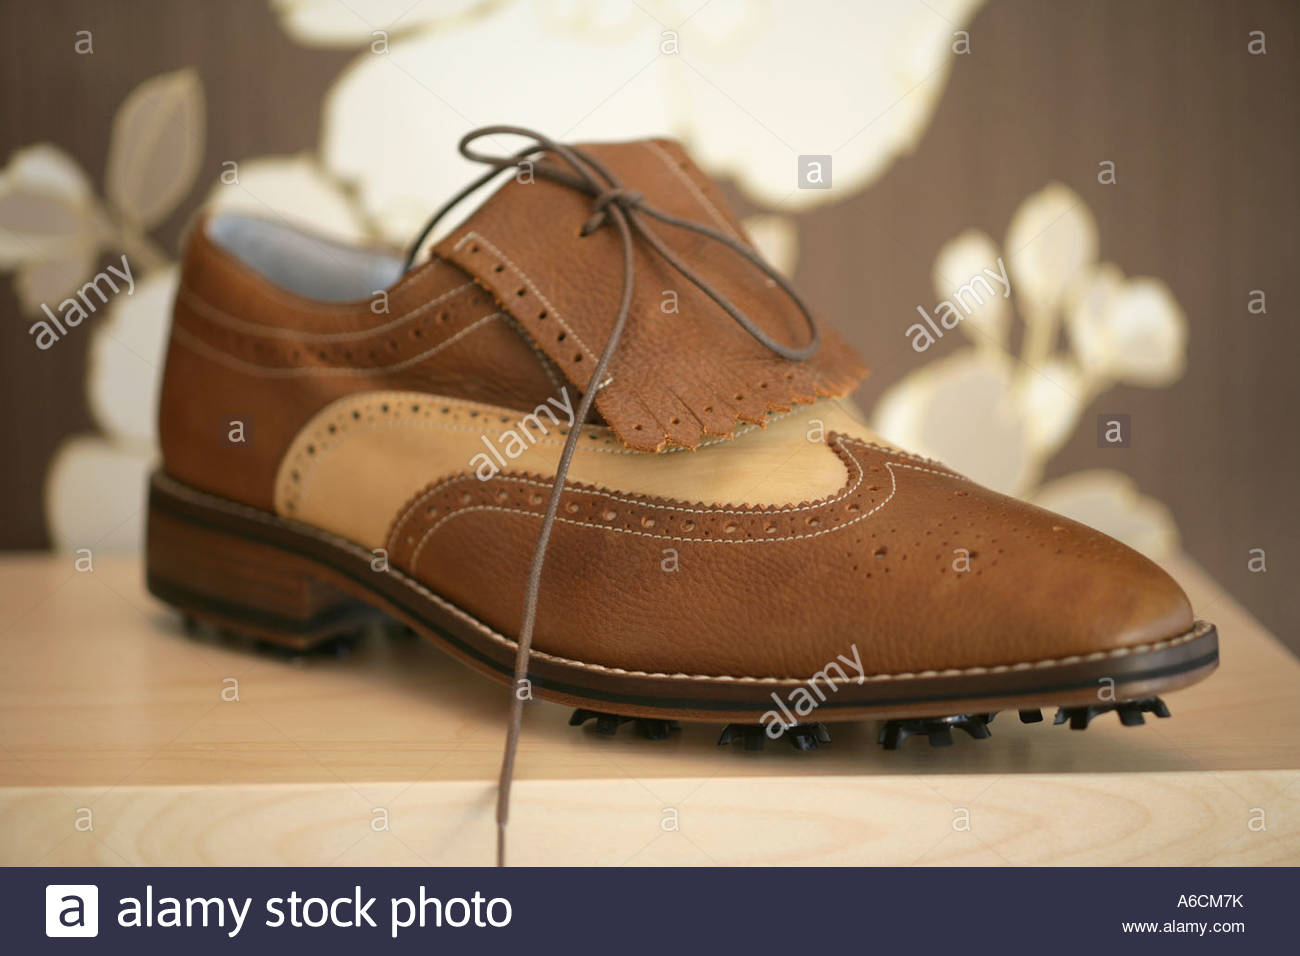 59427acae98 Golf shoes by William Hunt Stock Photo  11534742 - Alamy